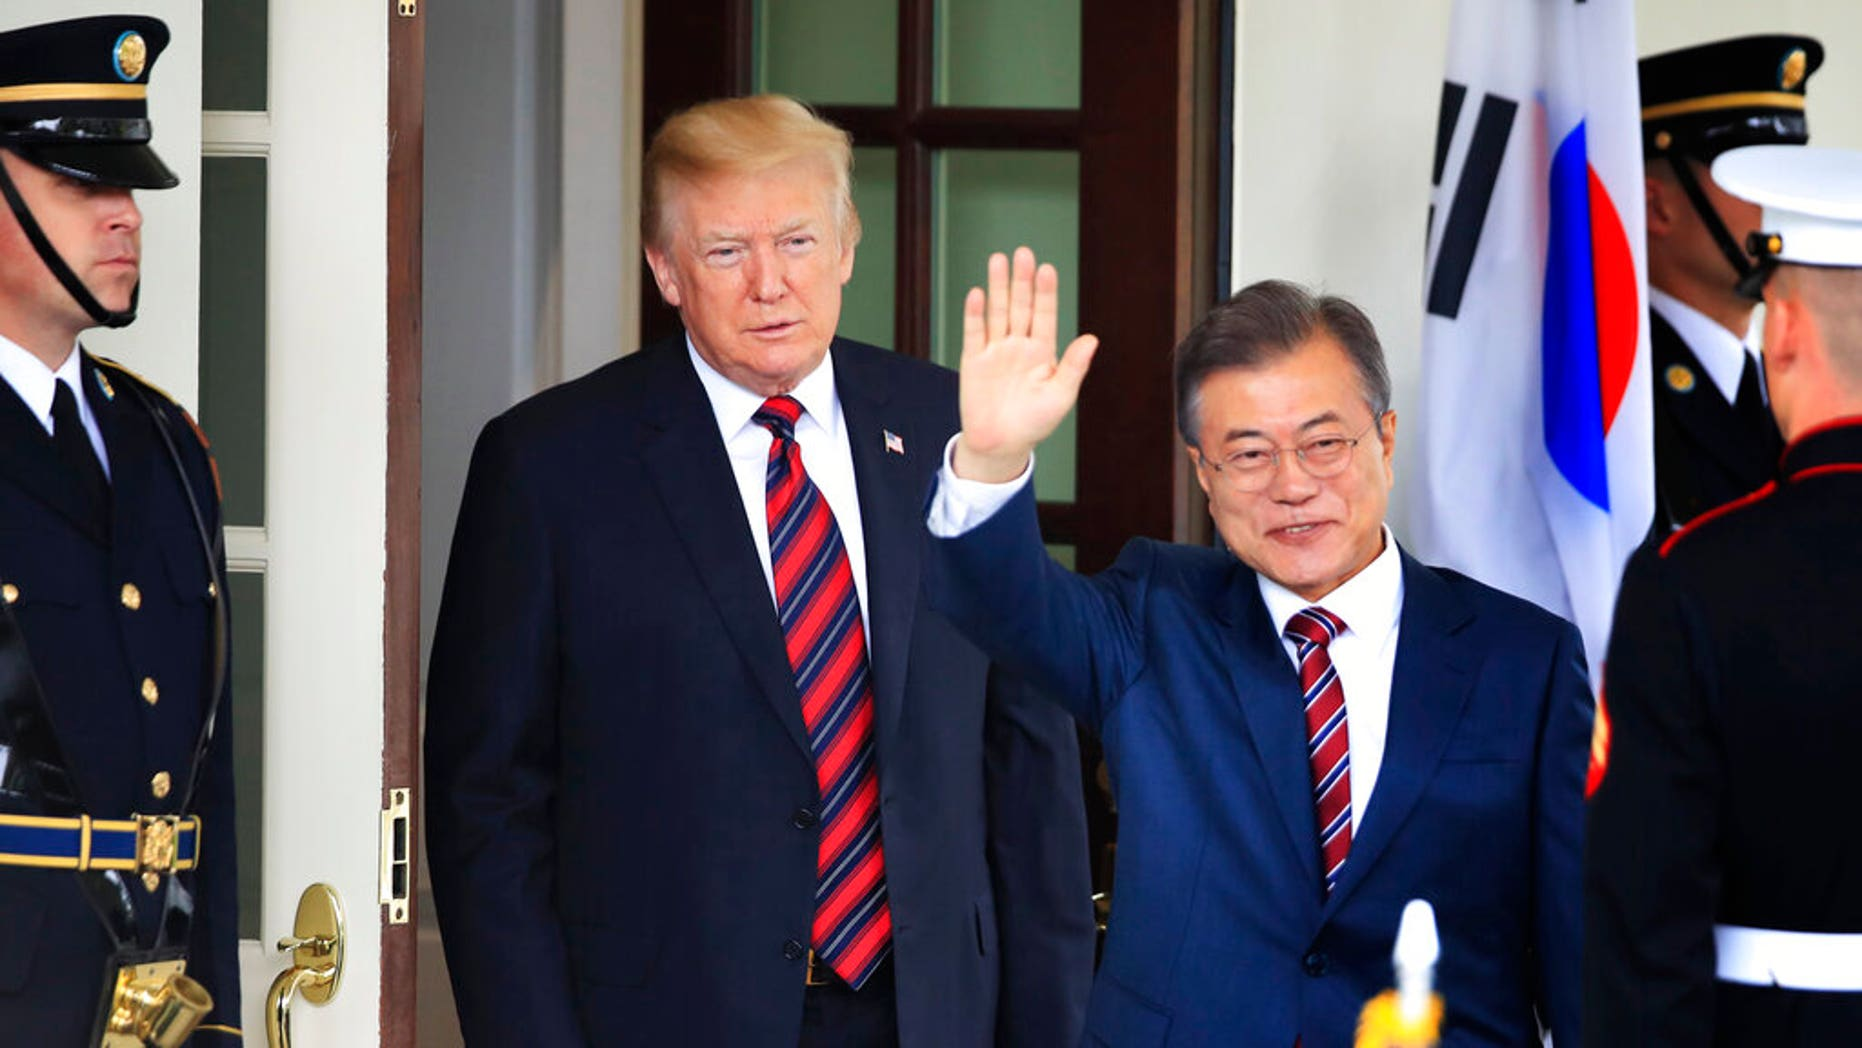 S. Korean leader to meet Trump in United States on nuke diplomacy